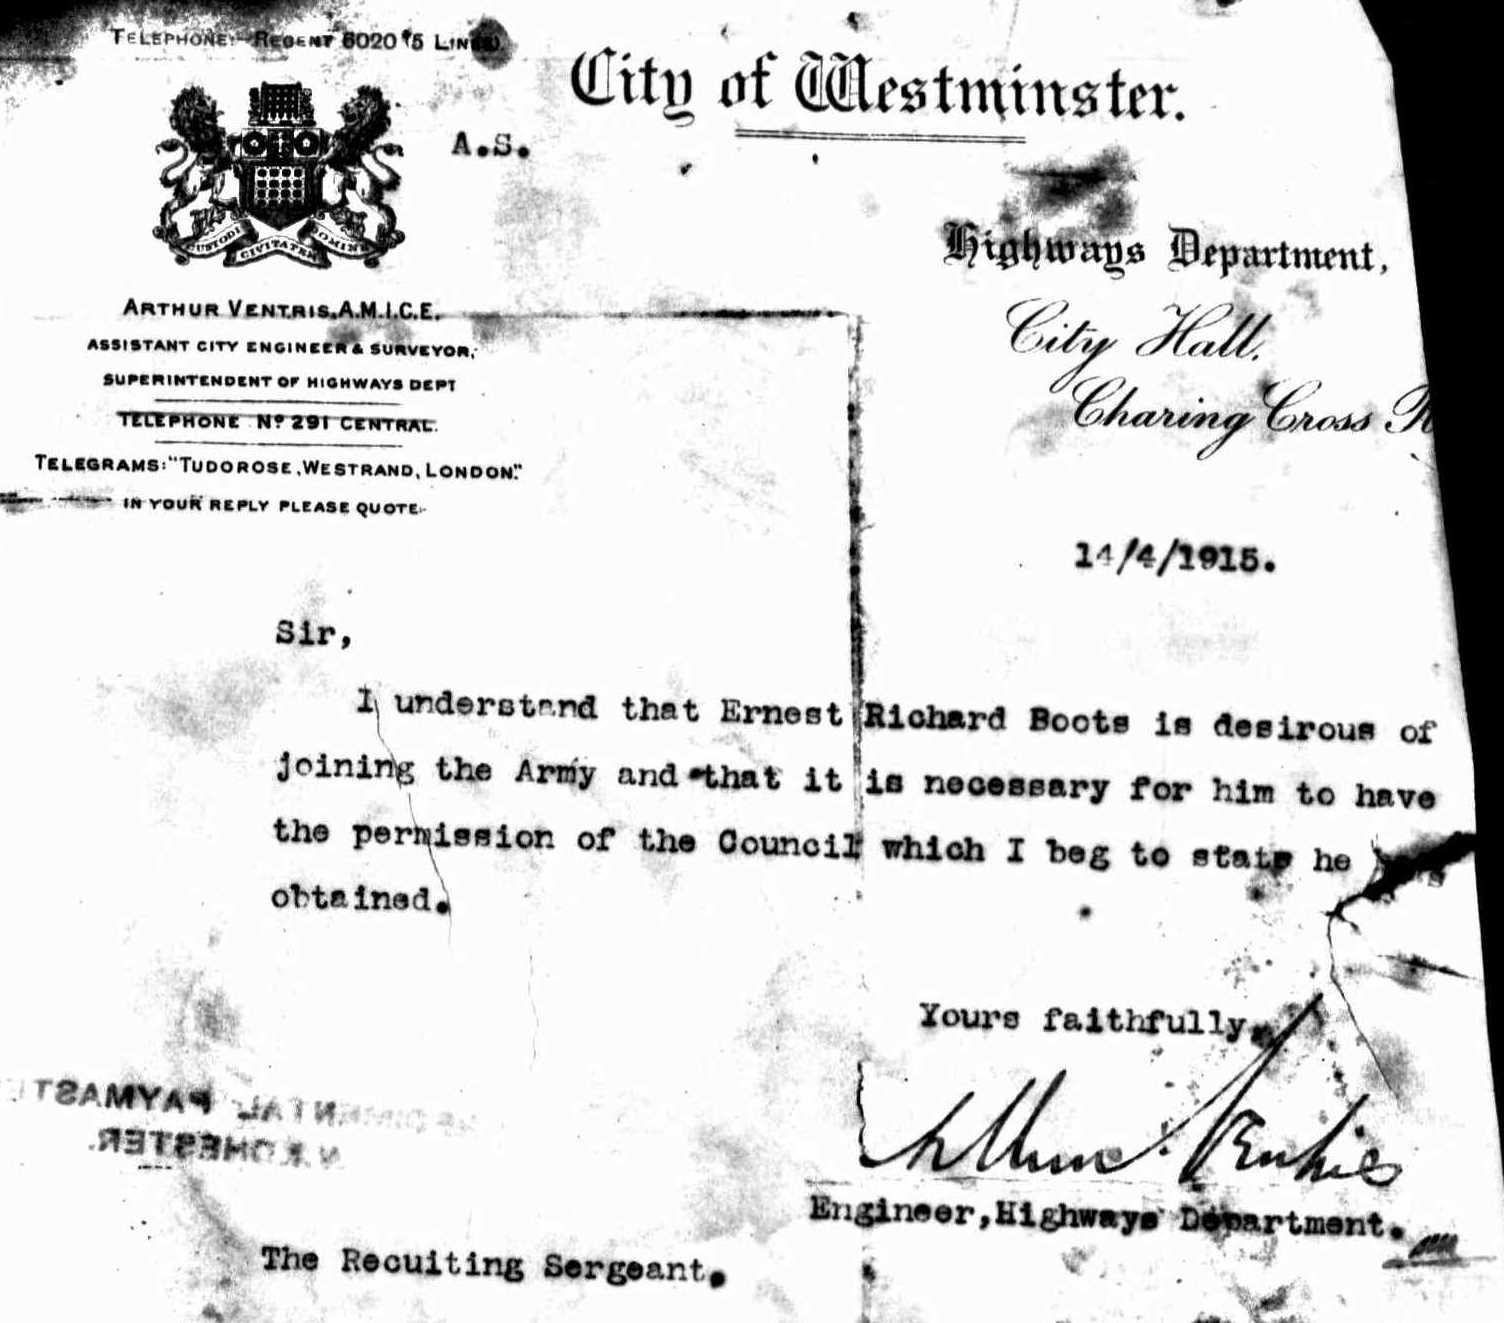 Westminster Council's Chief Engineer Arthur Ventris gave Ernest Boots permission to join the King's Royal Rifles in 1915.